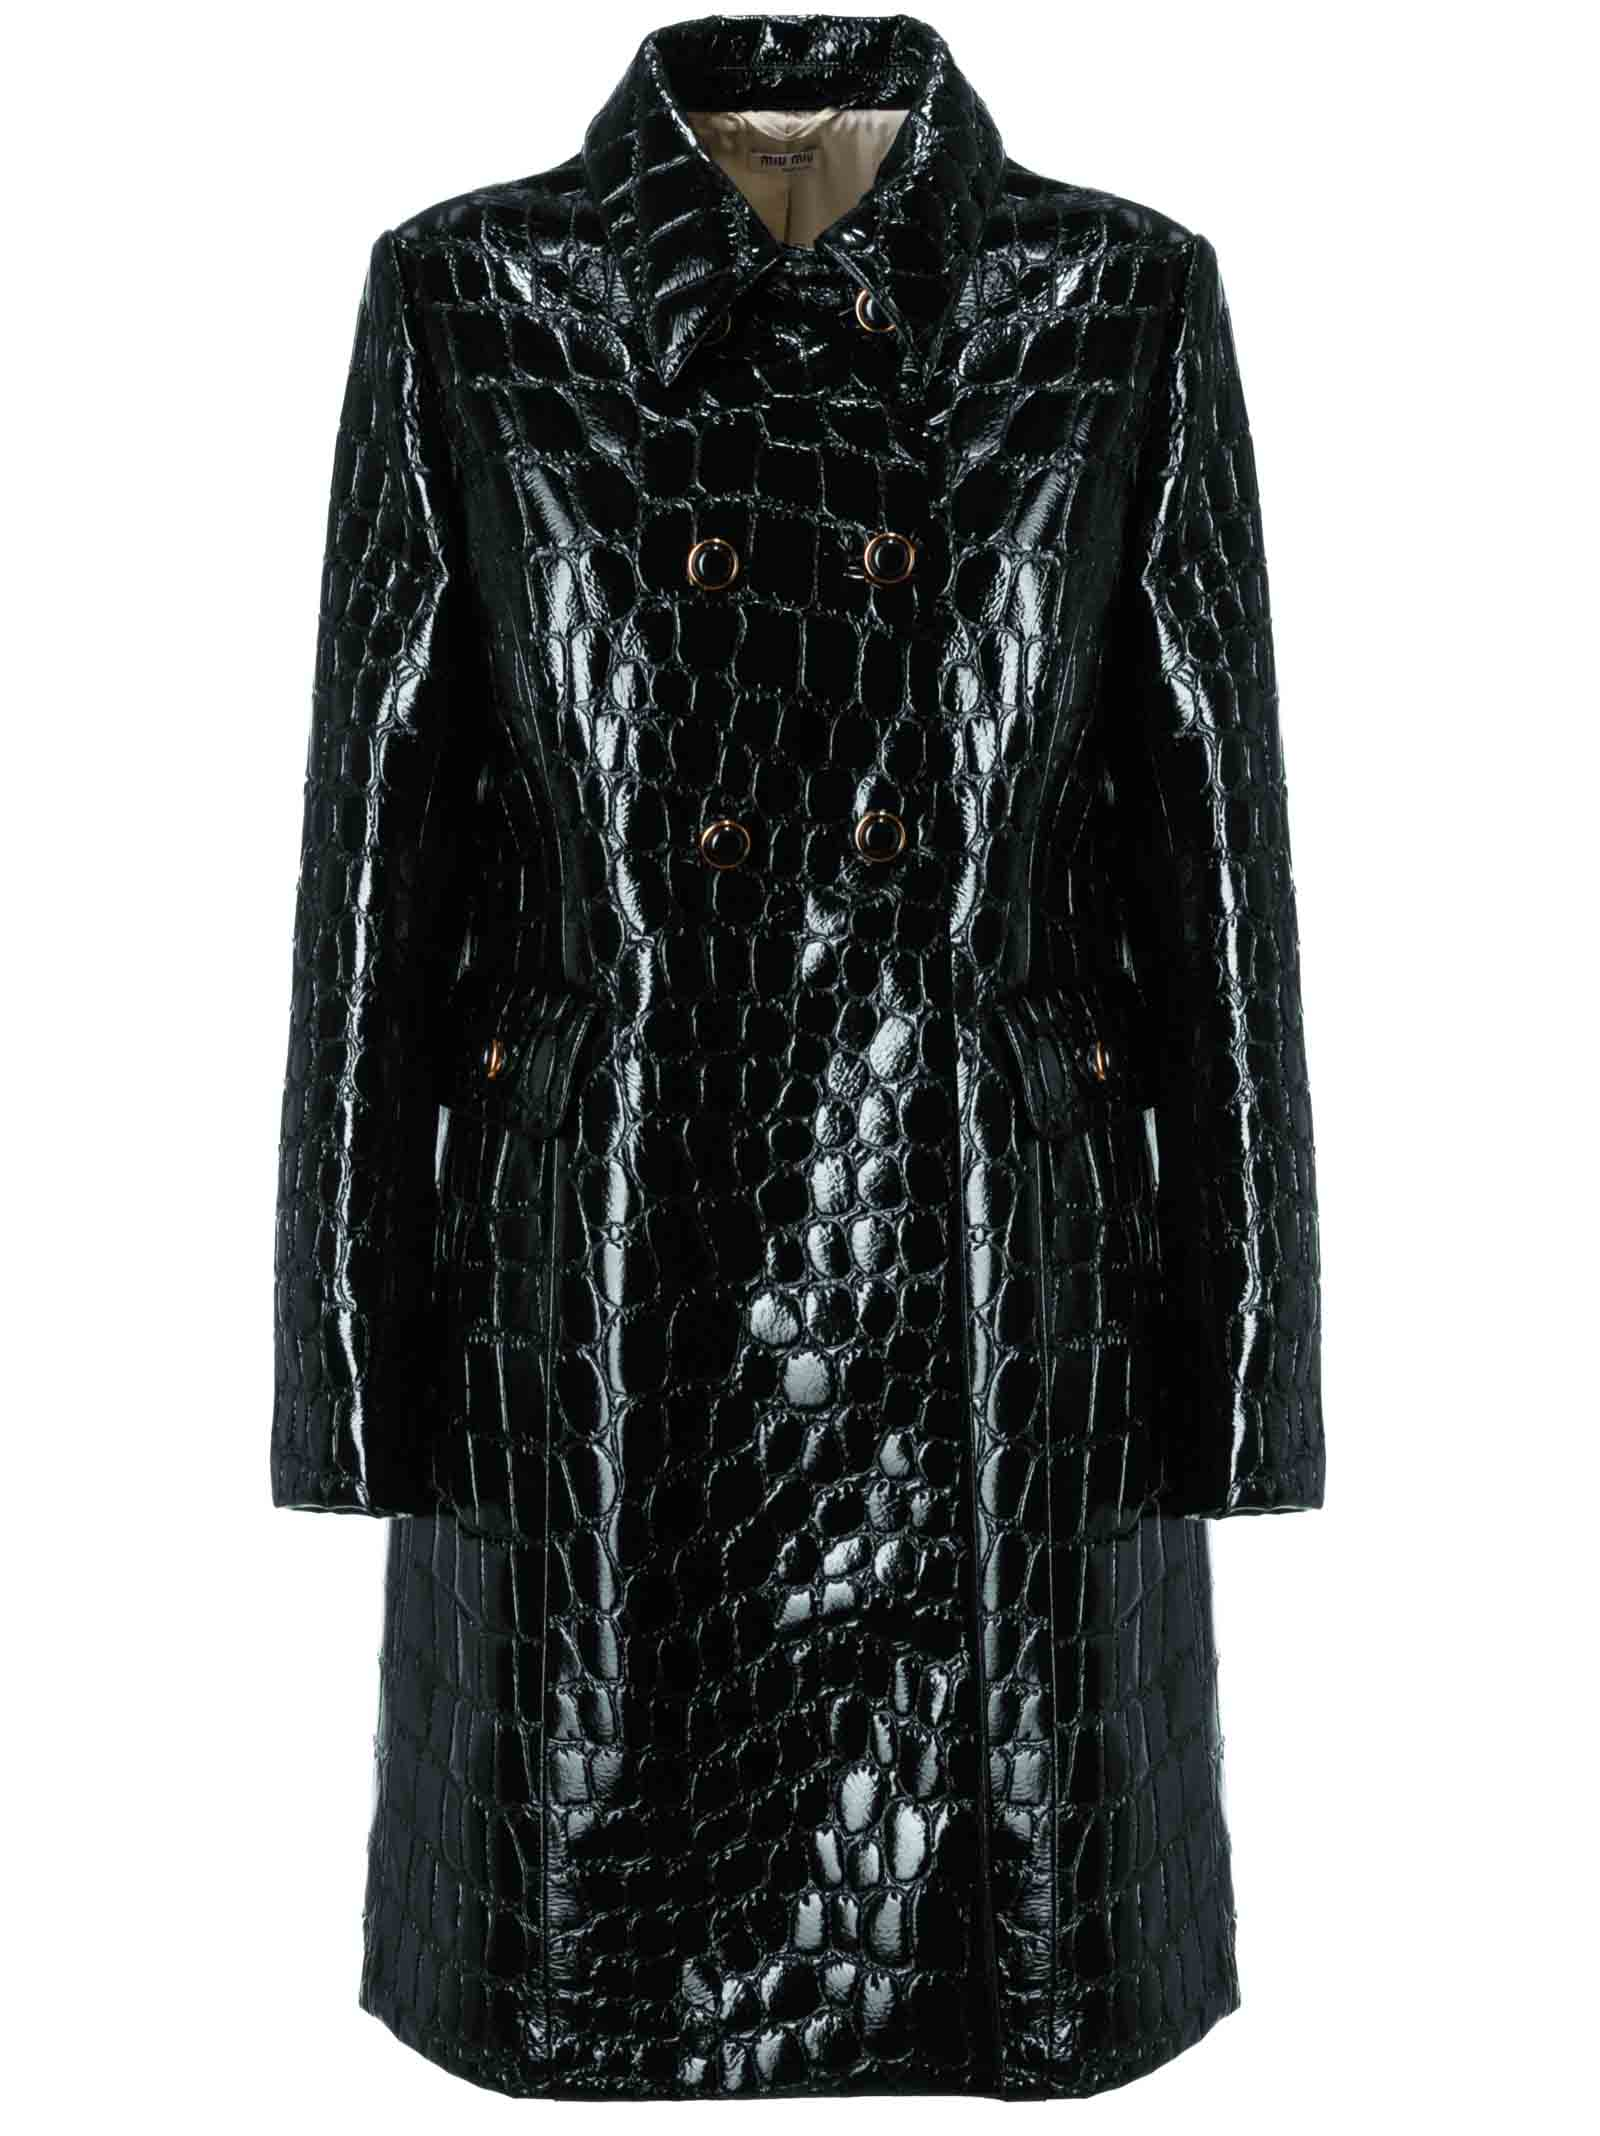 Miu Miu Double Breasted Coat